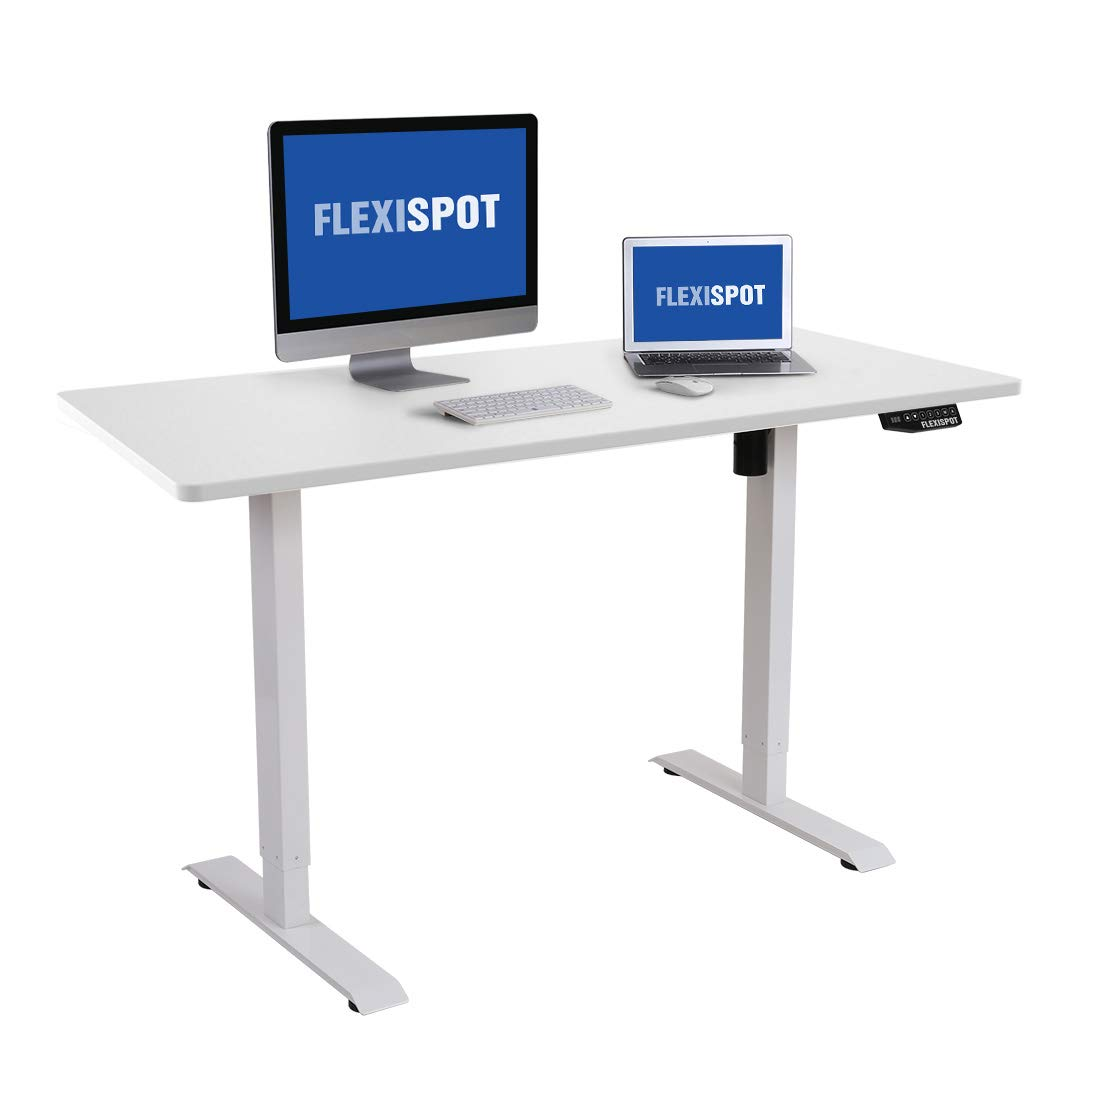 "Flexispot Electric Stand Up Desk Frame Workstation, 55 x 28 Inches, Dual Motor Ergonomic Standing Height Adjustable Desk Top Base (White Frame + 55"" White Top)"